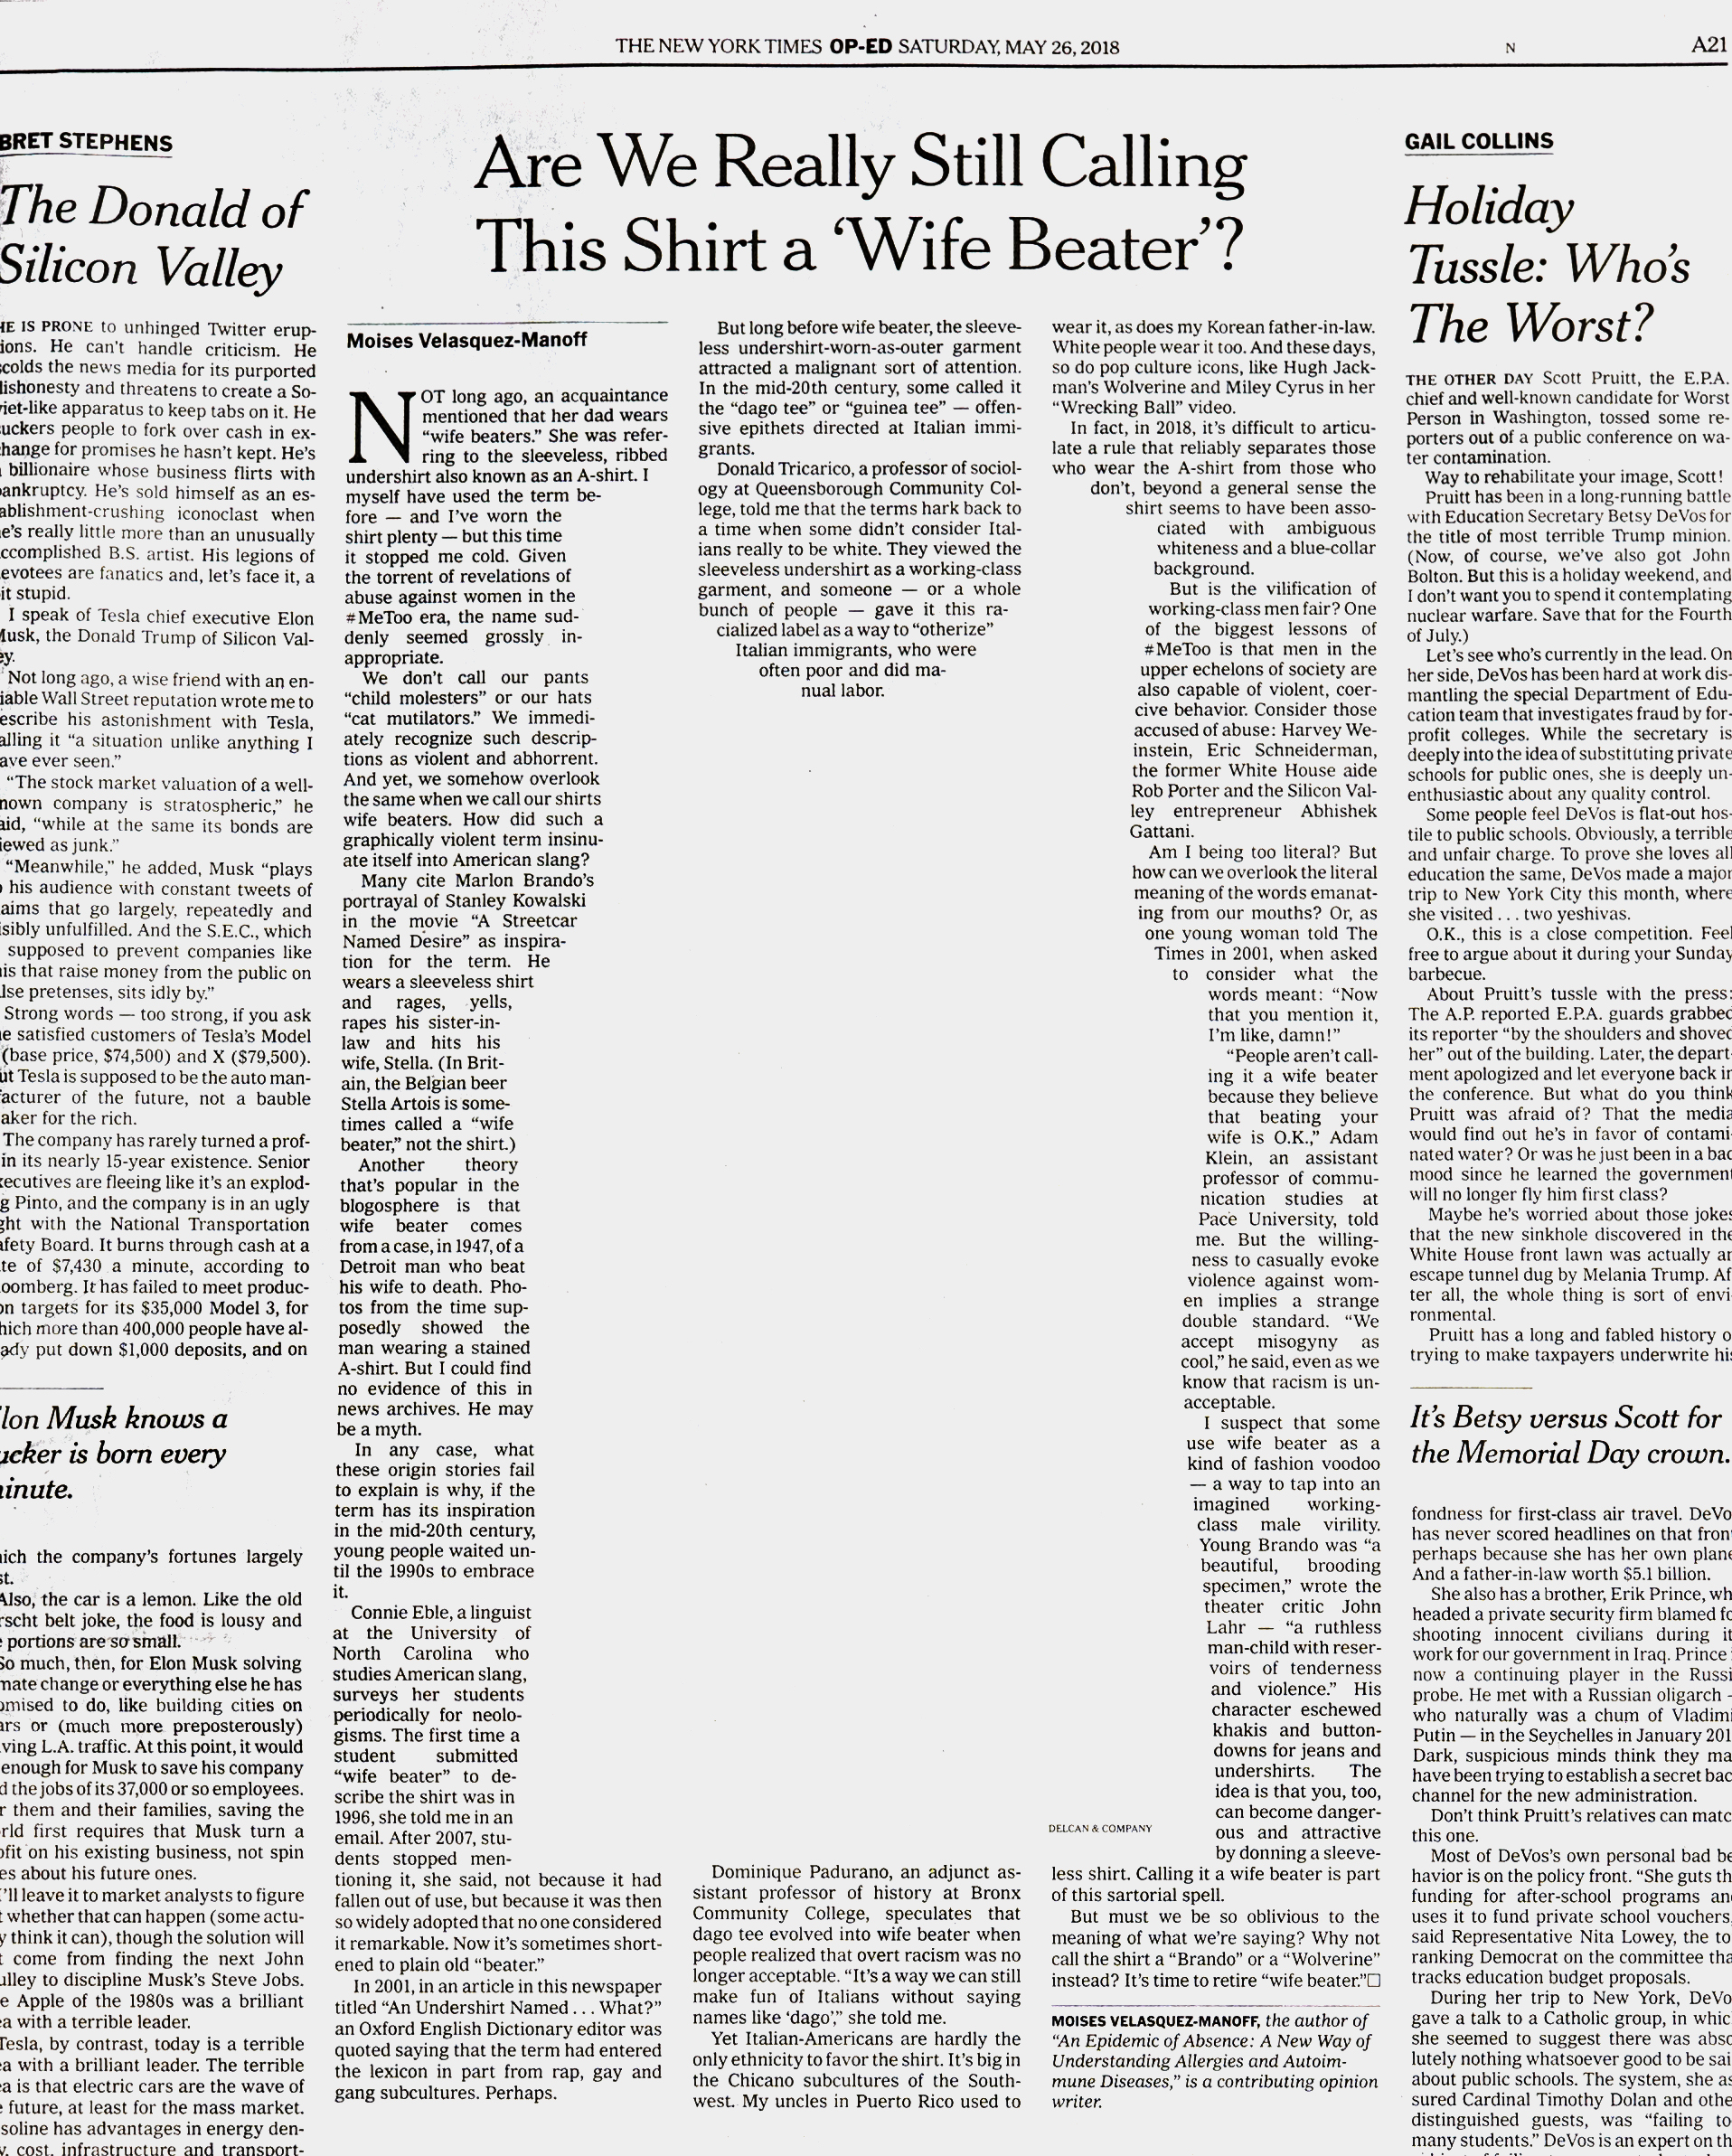 Are We Really Still Calling This Shirt a 'Wife Beater'?